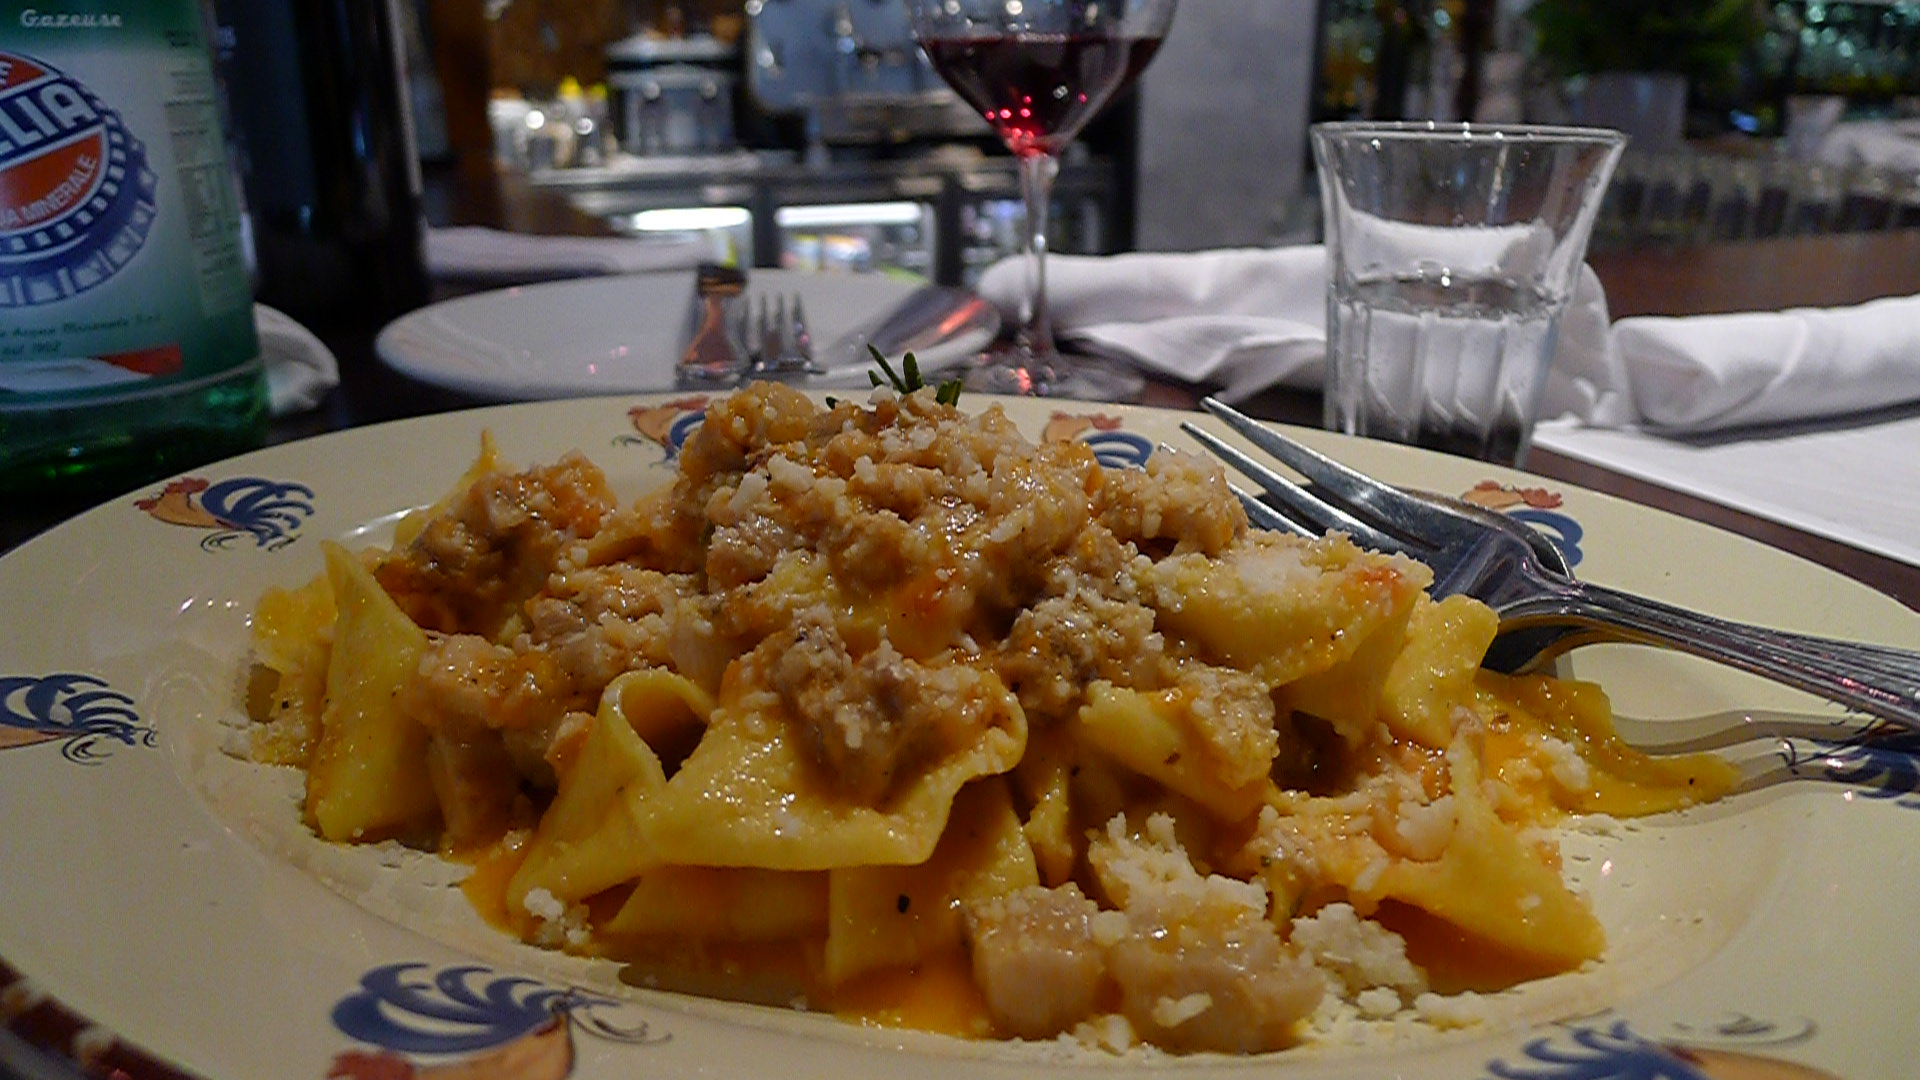 Papardelle Con Porchetta - Handmade pasta w/ slow roasted pork shoulder & Pecorino Romano